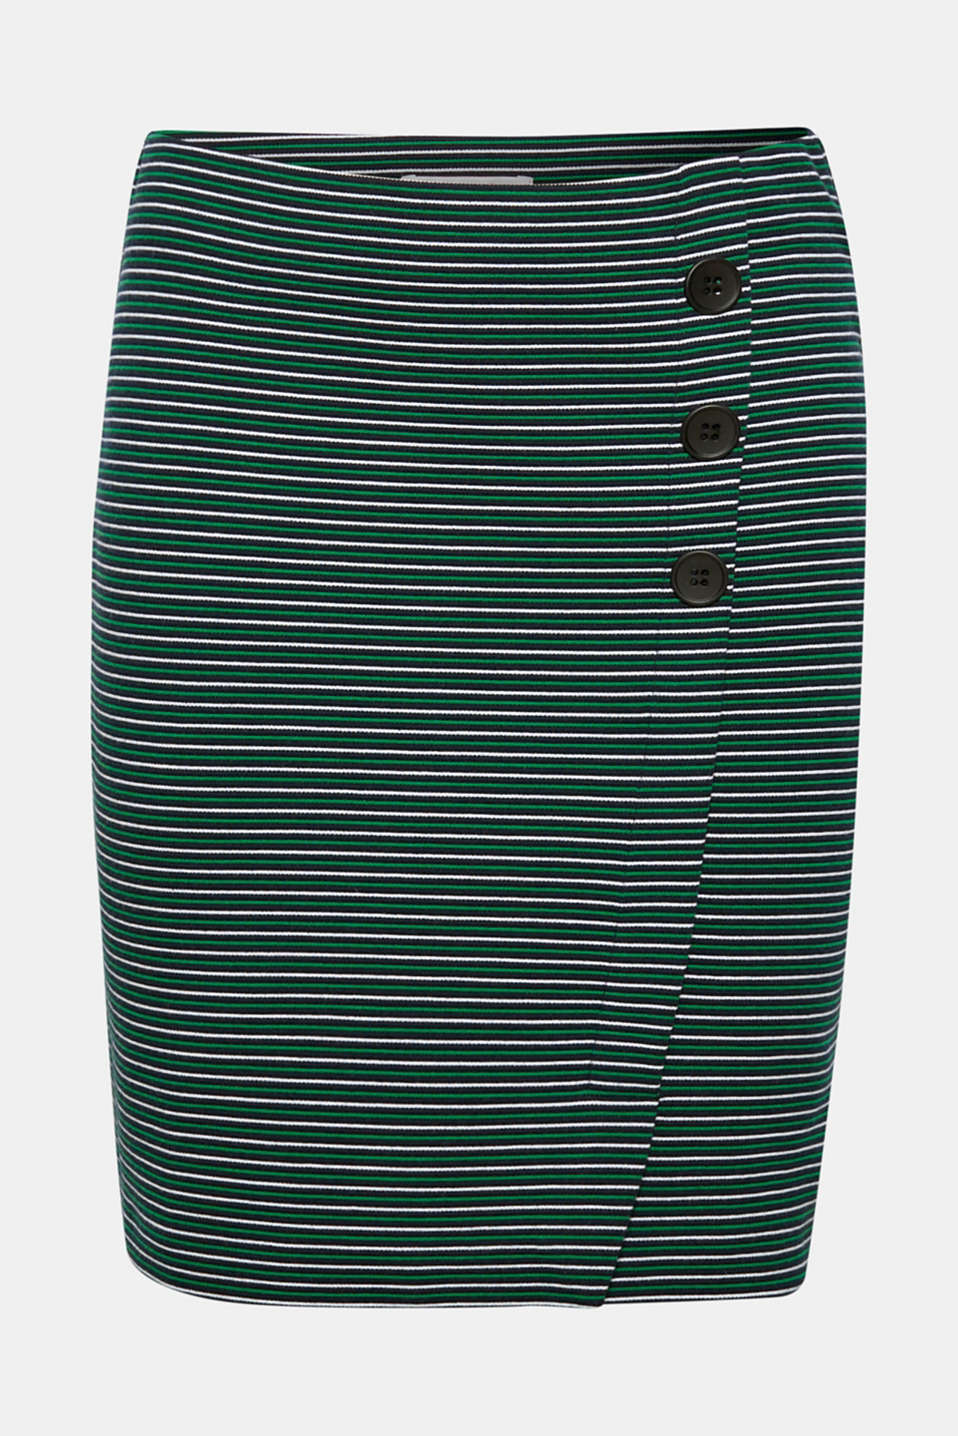 Stretch jersey skirt with a button placket, NAVY, detail image number 6